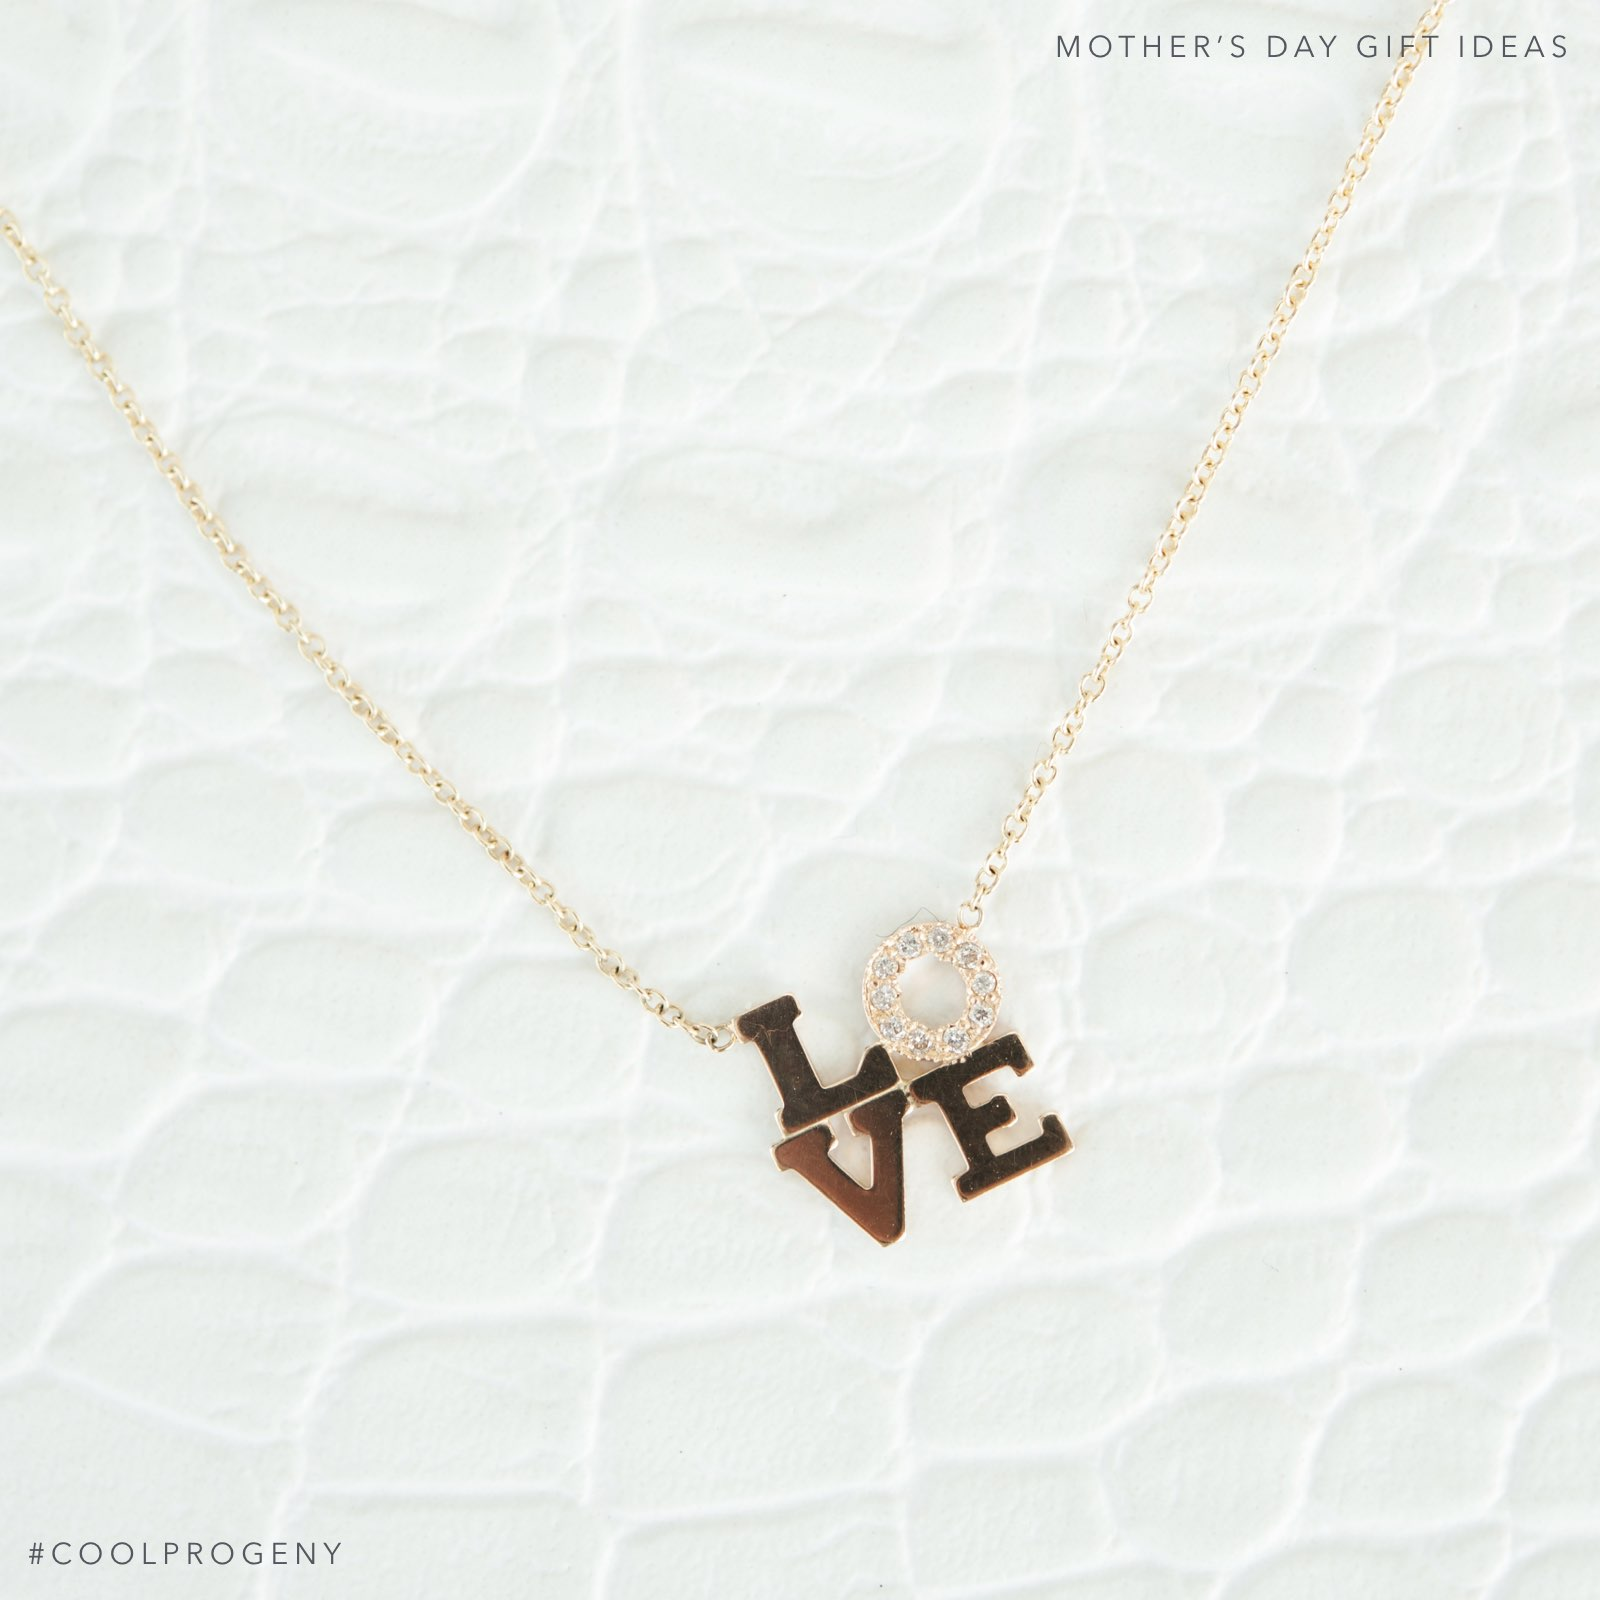 Mother's Day Gift Idea - (cool) progeny - Love Necklace, available from Radcliffe Jewelers